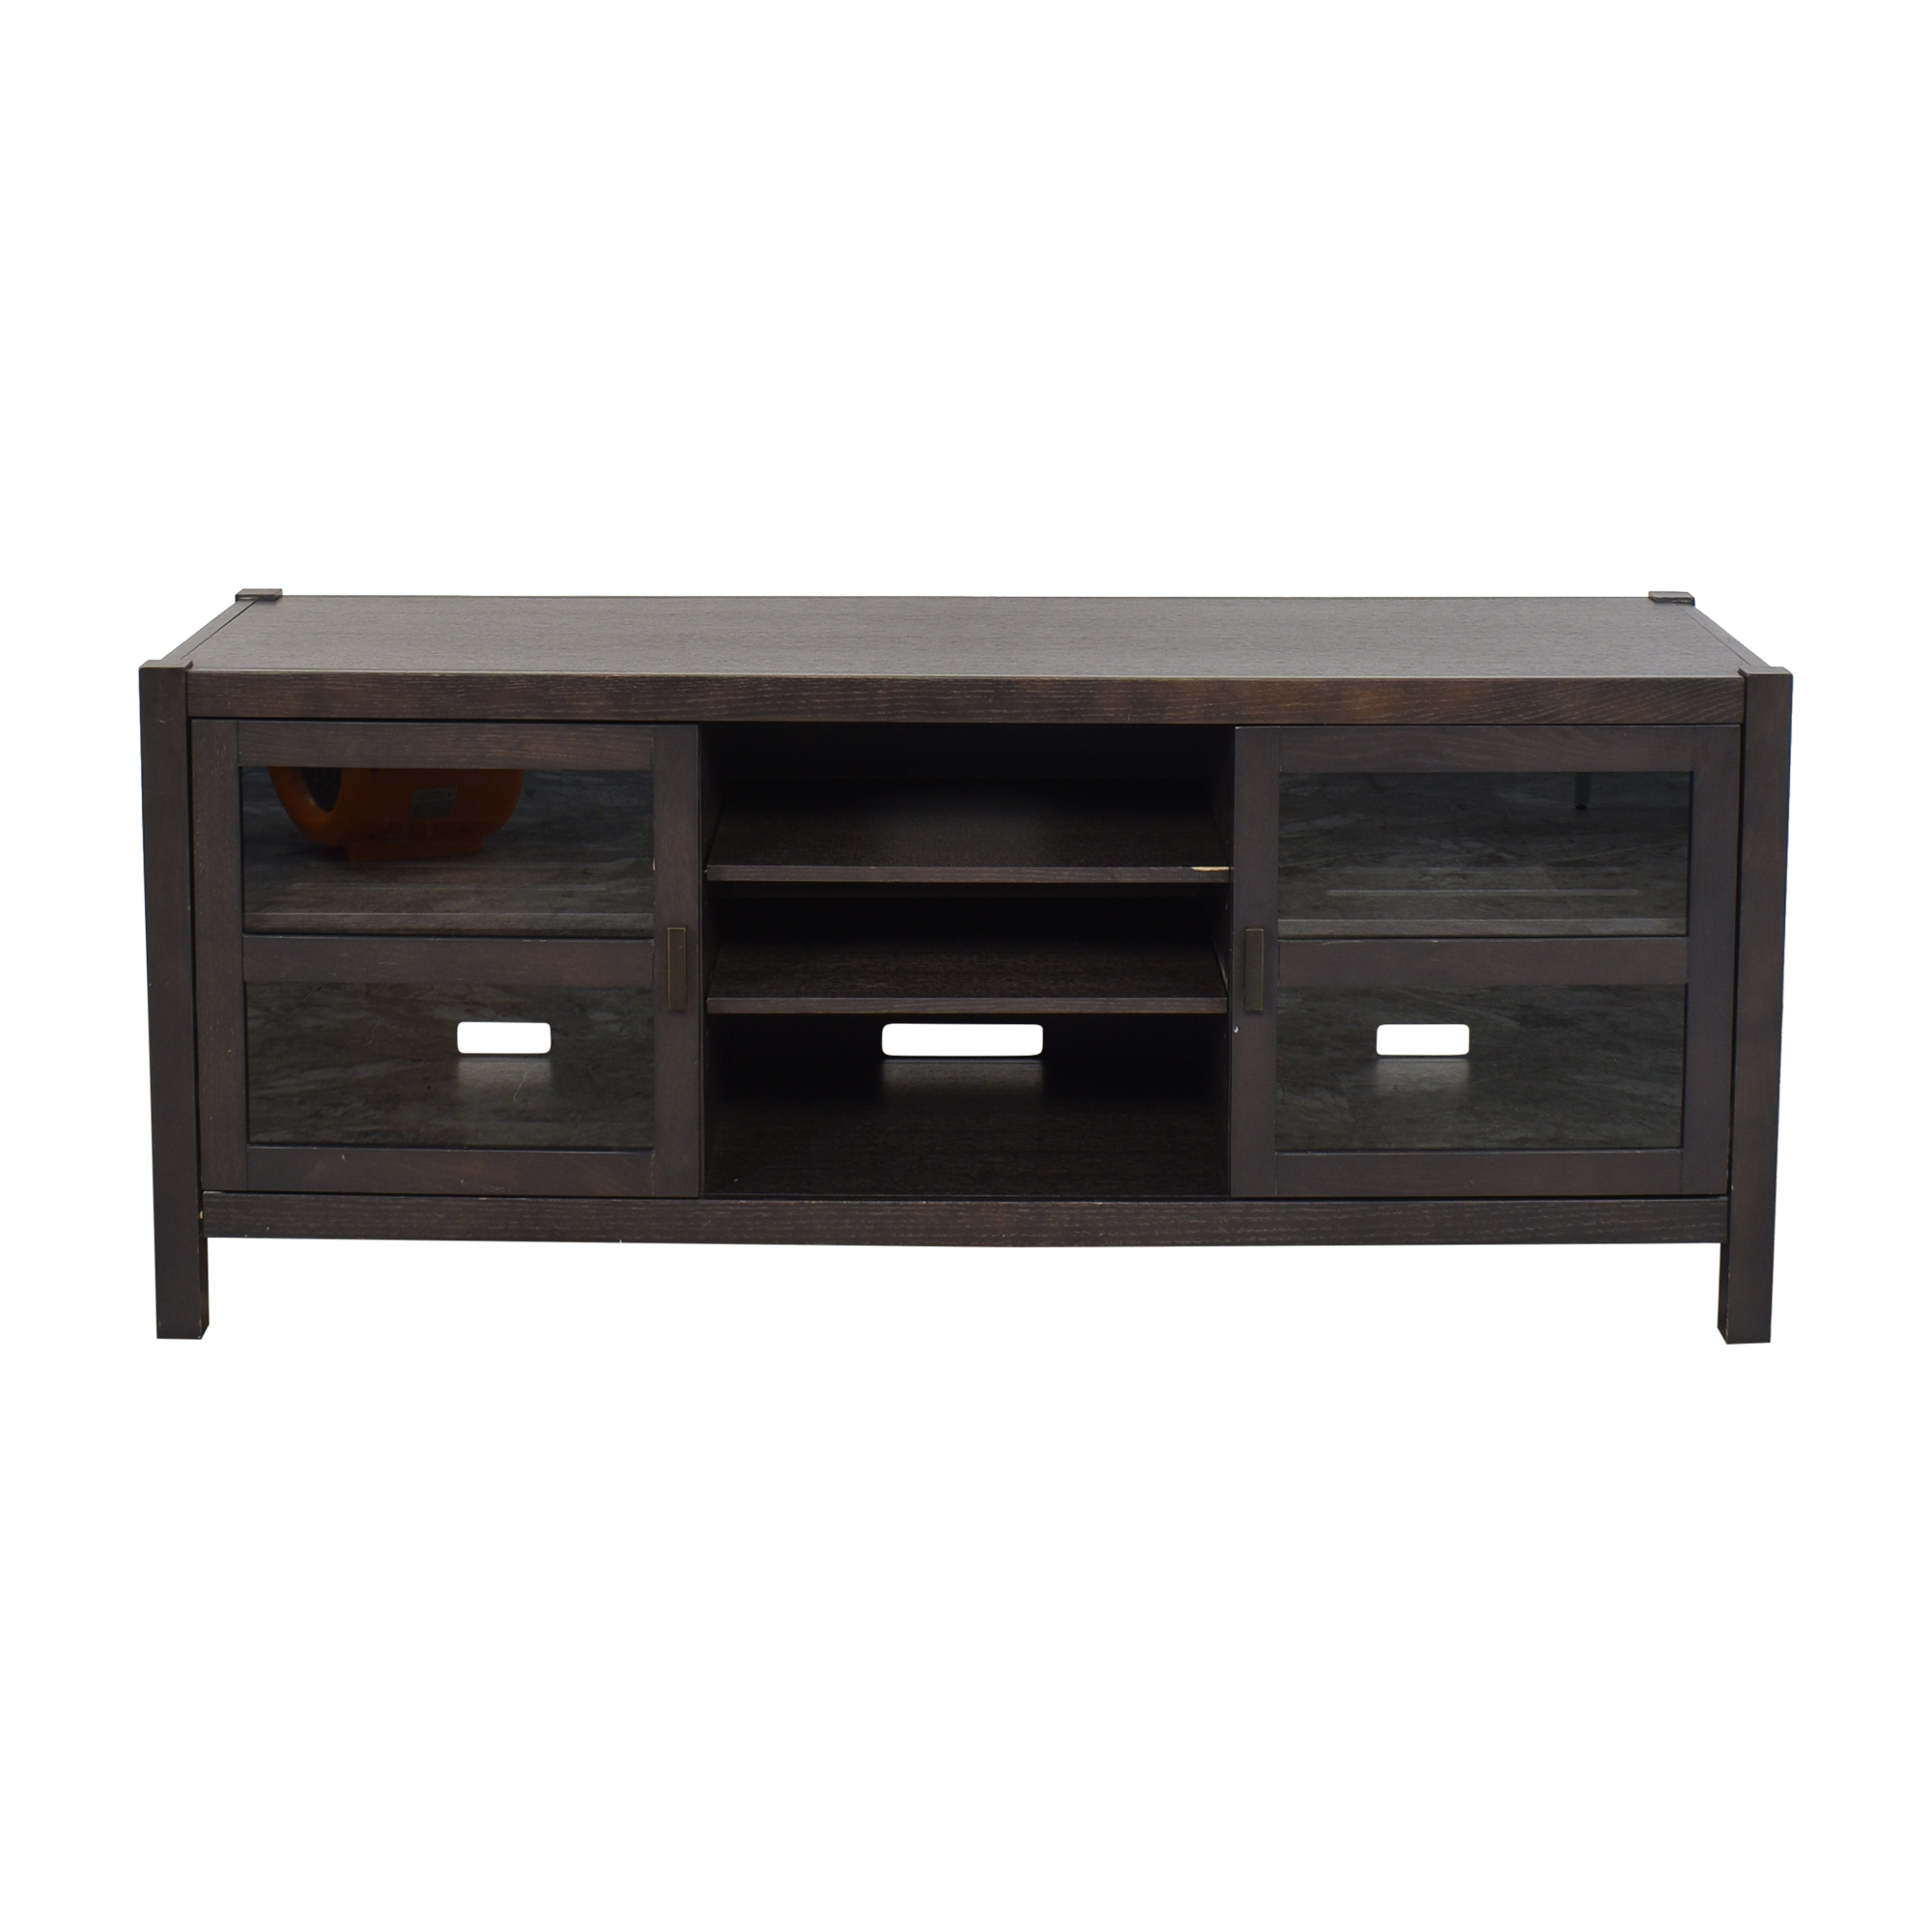 Crate & Barrel Crate & Barrel Modern Media Console used